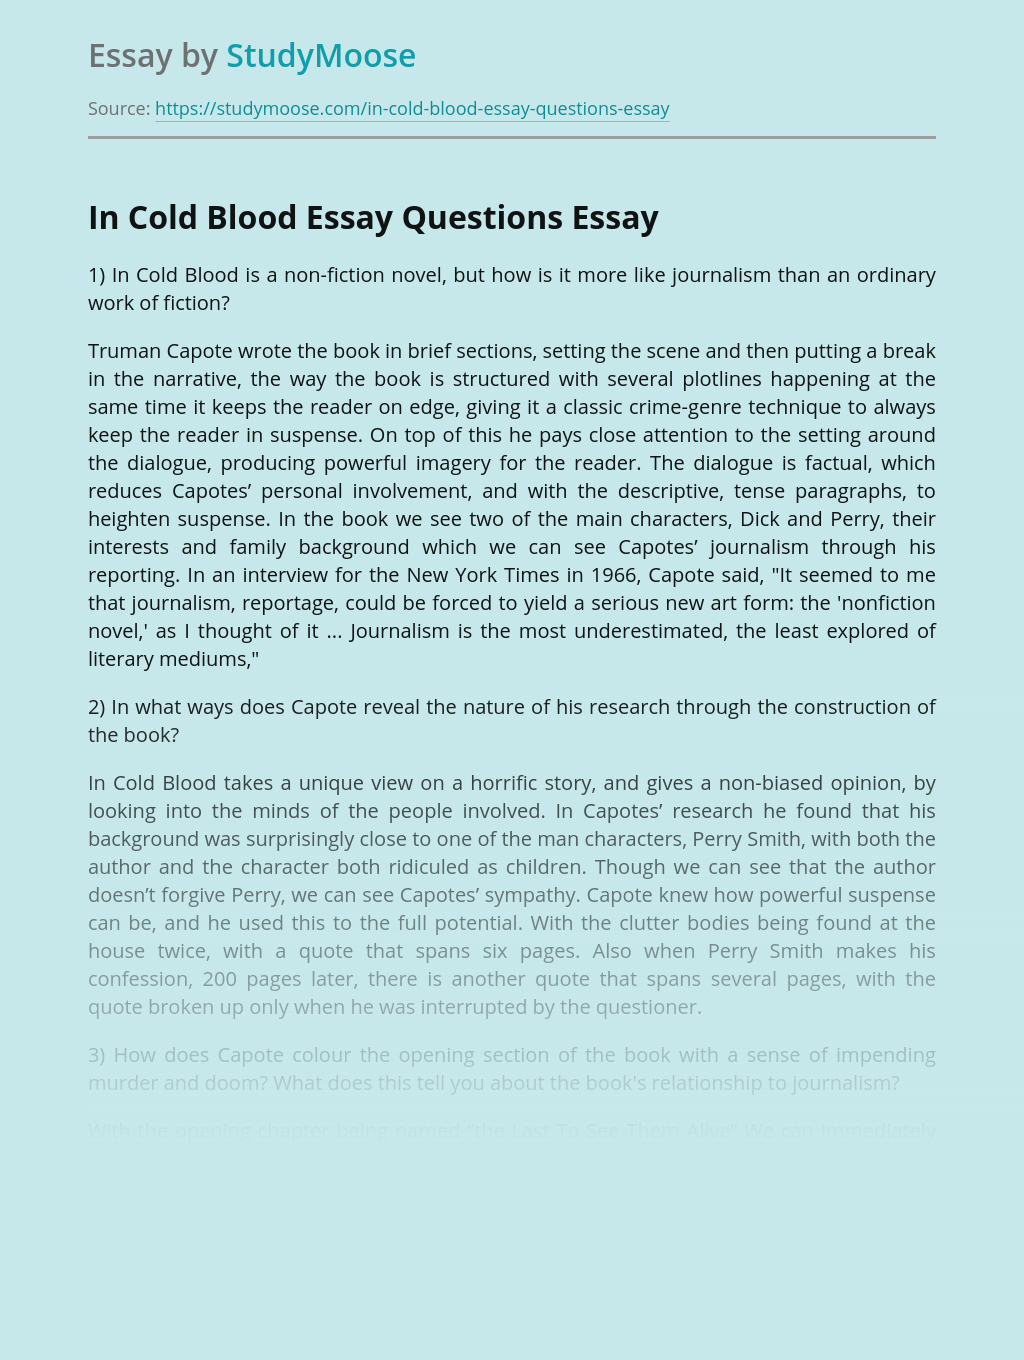 In Cold Blood Essay Questions